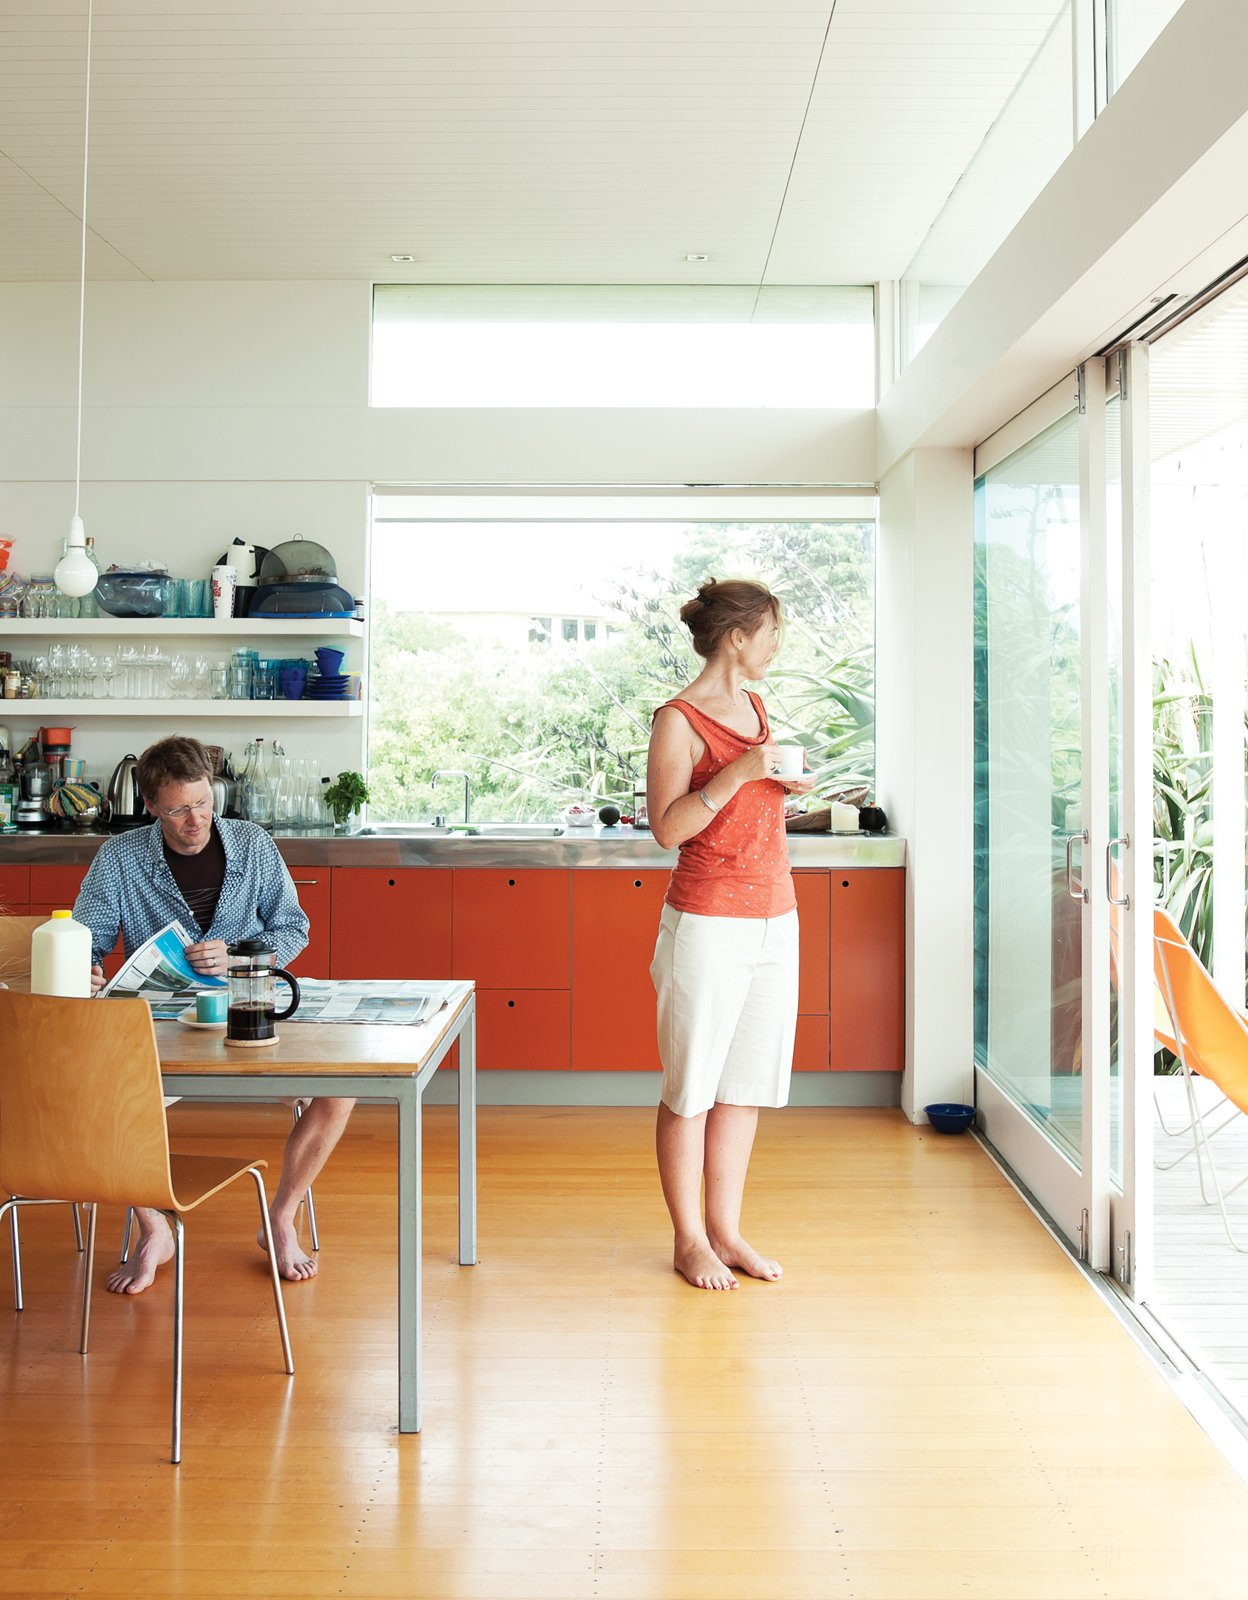 The bach was designed with a combined open-plan kitchen, living room, and dining area, for which Gerald designed a dining table that seats ten. Bare bulbs, open shelves, and bright orange MDF cabinets in the kitchen maintain the low-key vibe. Tagged: Dining Room, Table, Light Hardwood Floor, and Chair.  Best Photos from Bach to the Beach